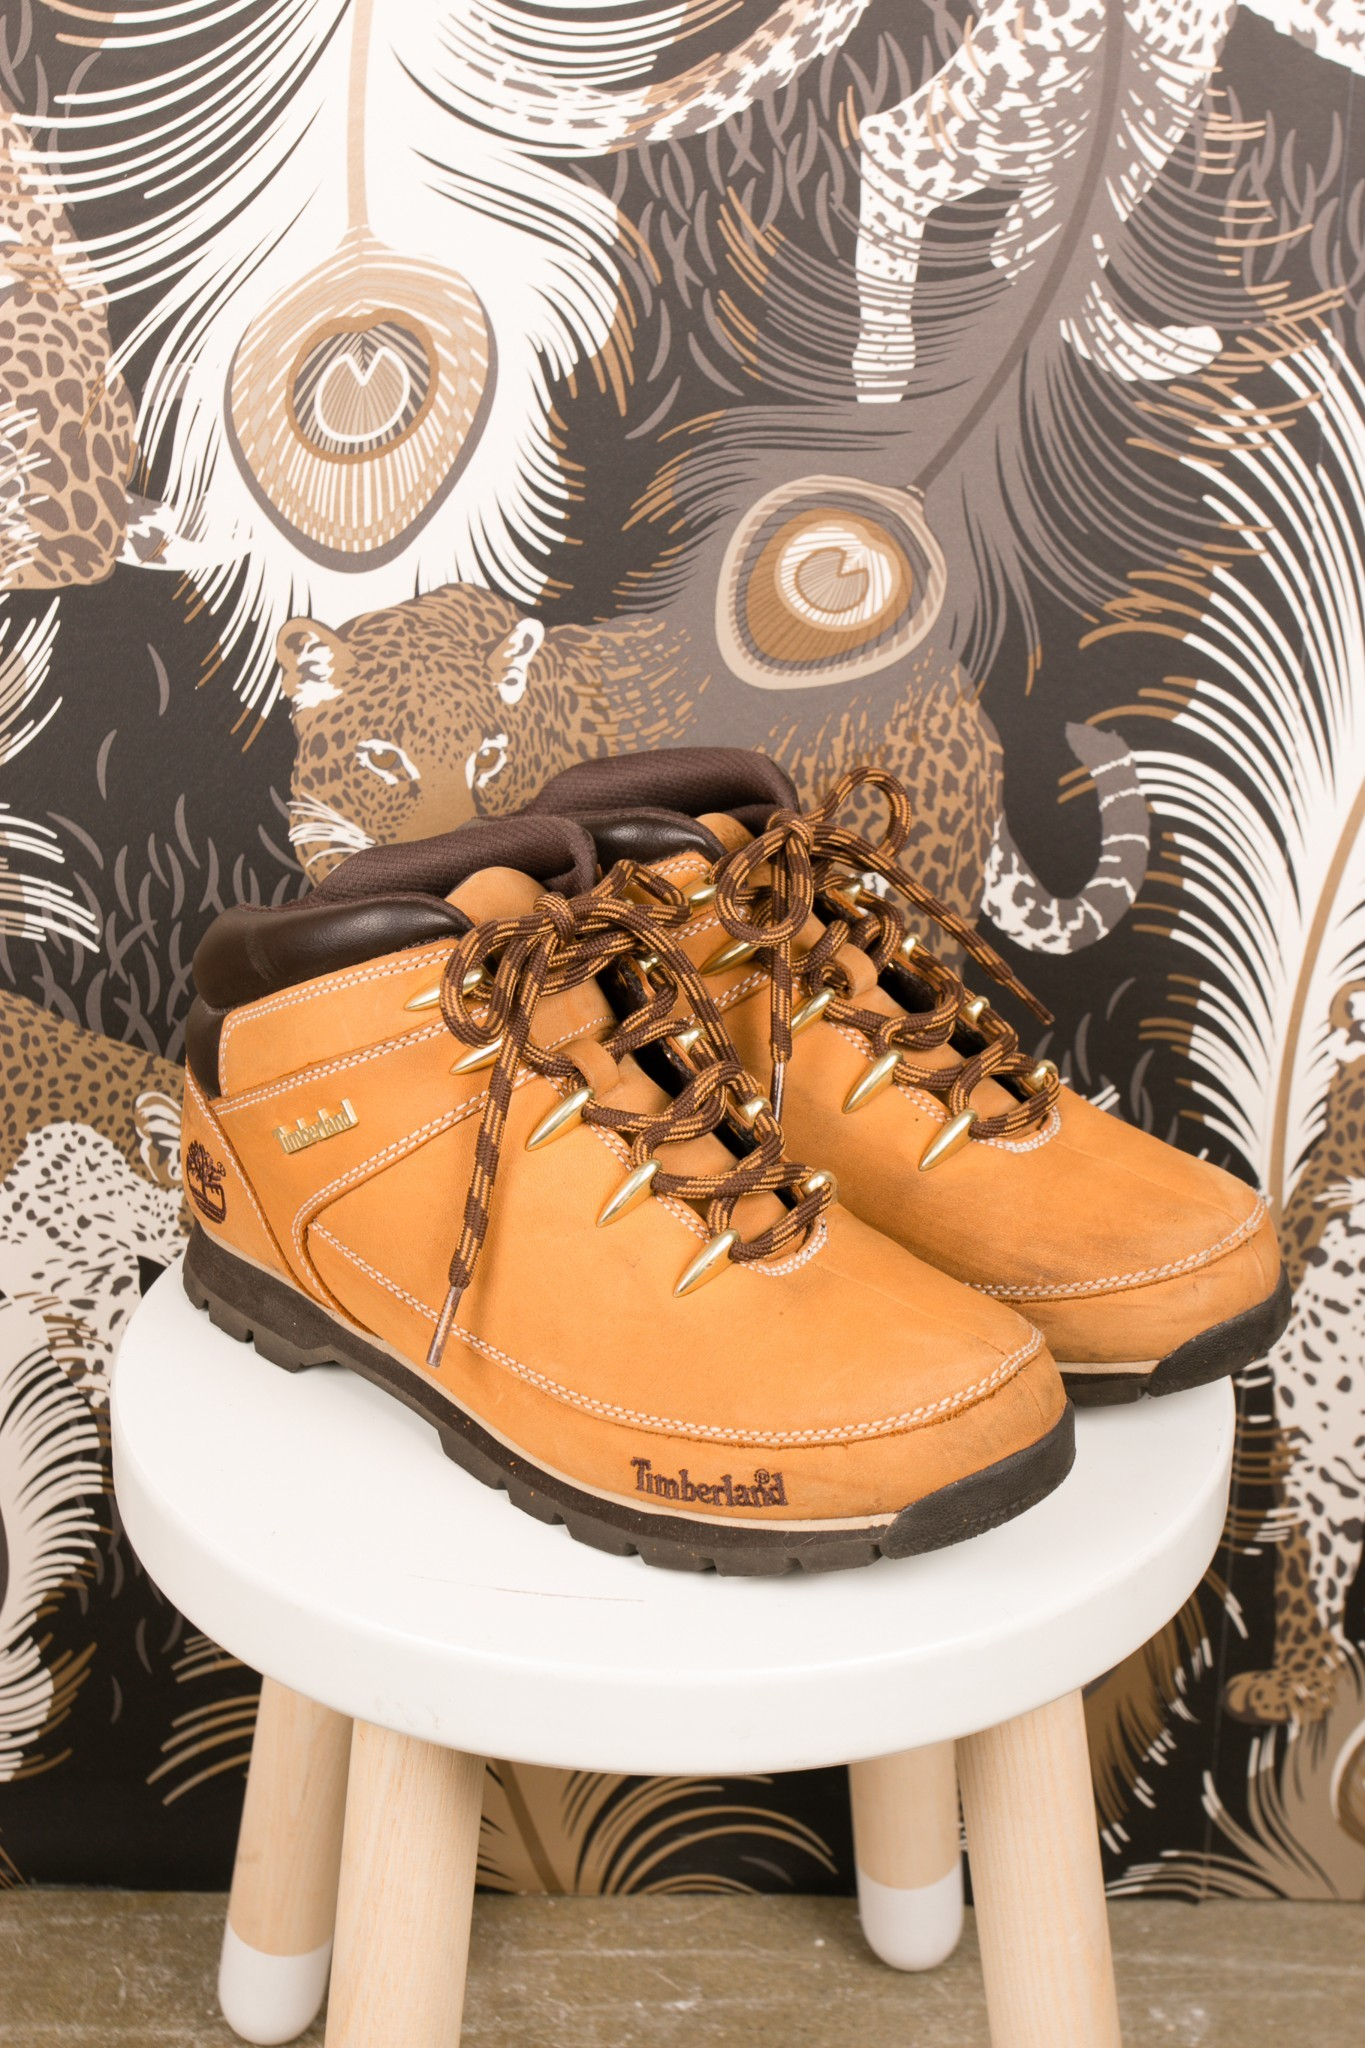 Boots from Timberland - A Piece Lux